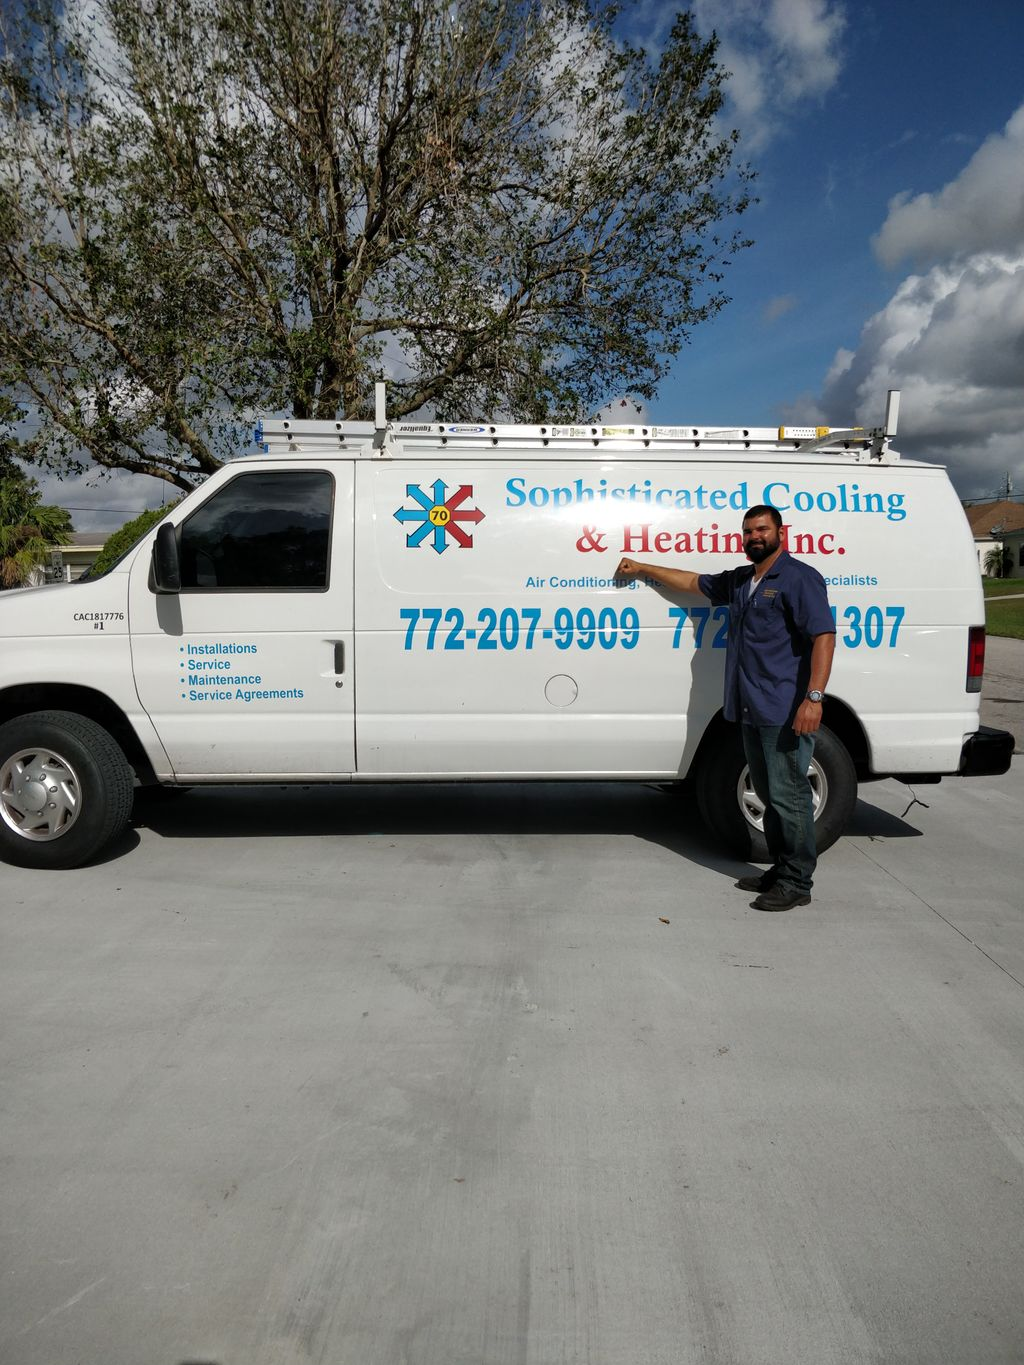 Sophisticated Cooling & Heating Inc.